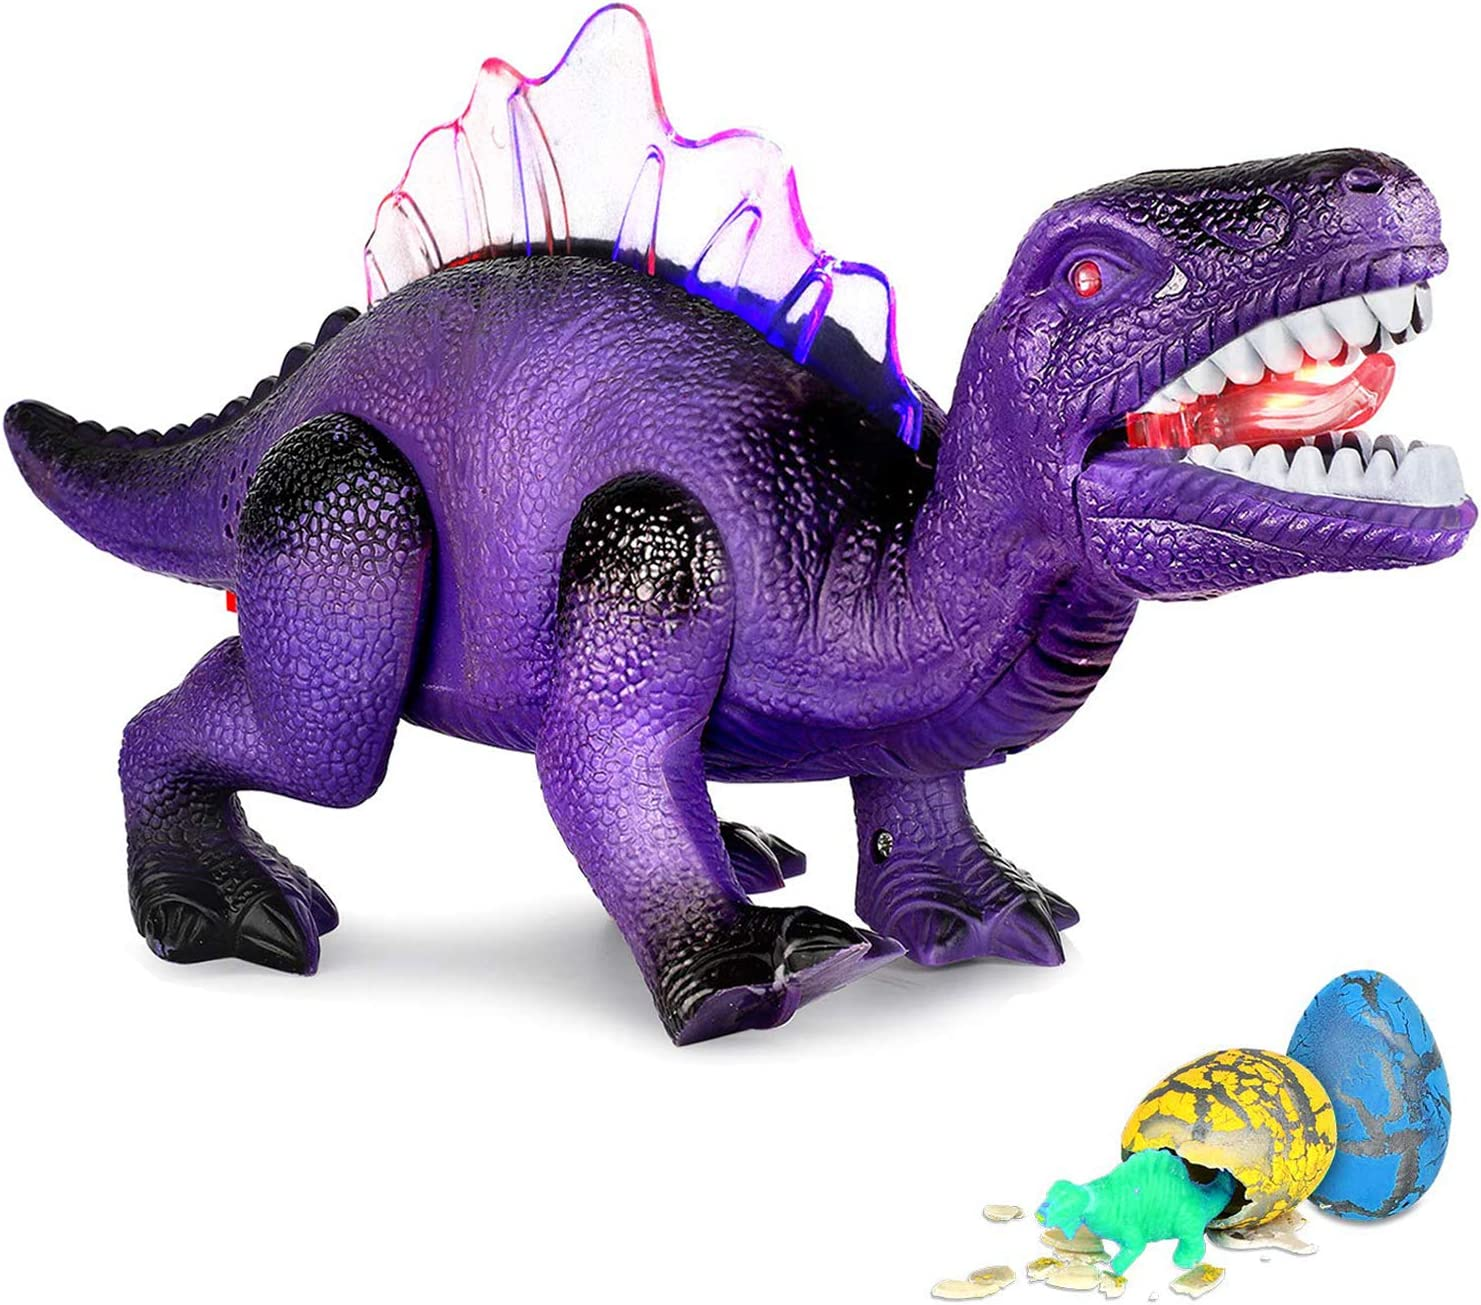 Walking Dinosaur Toys Battery Operated Dinosaur Toy Gifts for Kids Sky Blue